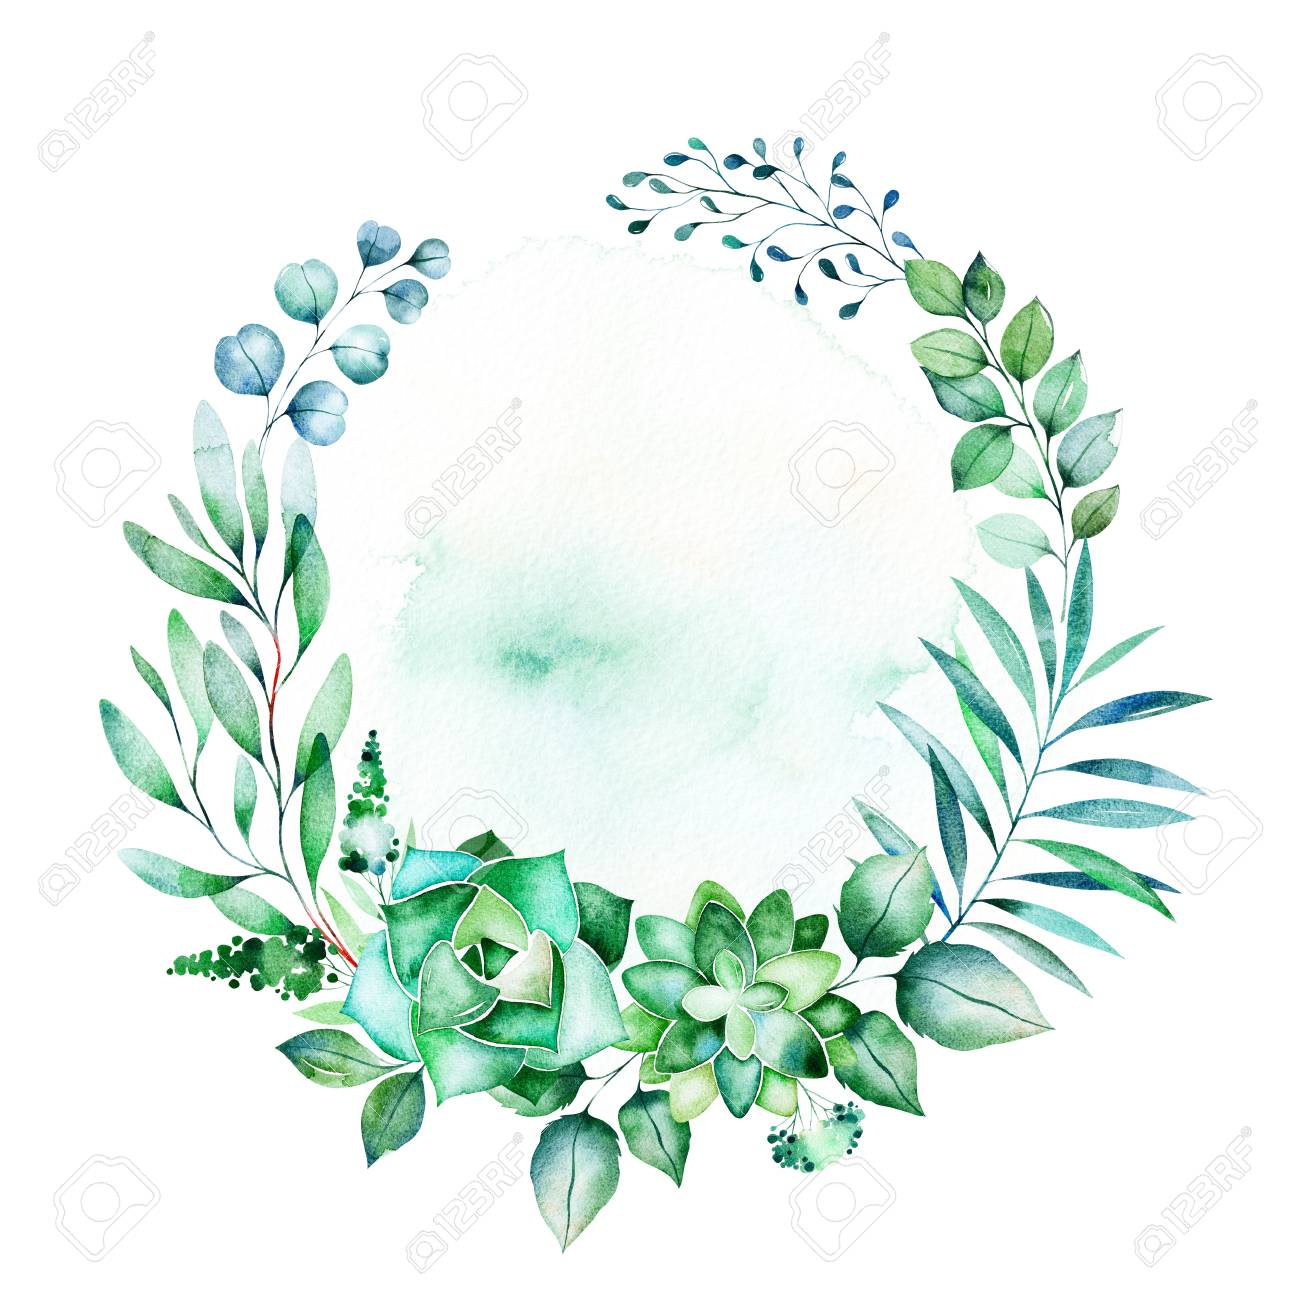 Watercolor Green Illustration Wreath With Succulent Plants Stock Photo Picture And Royalty Free Image Image 106078579